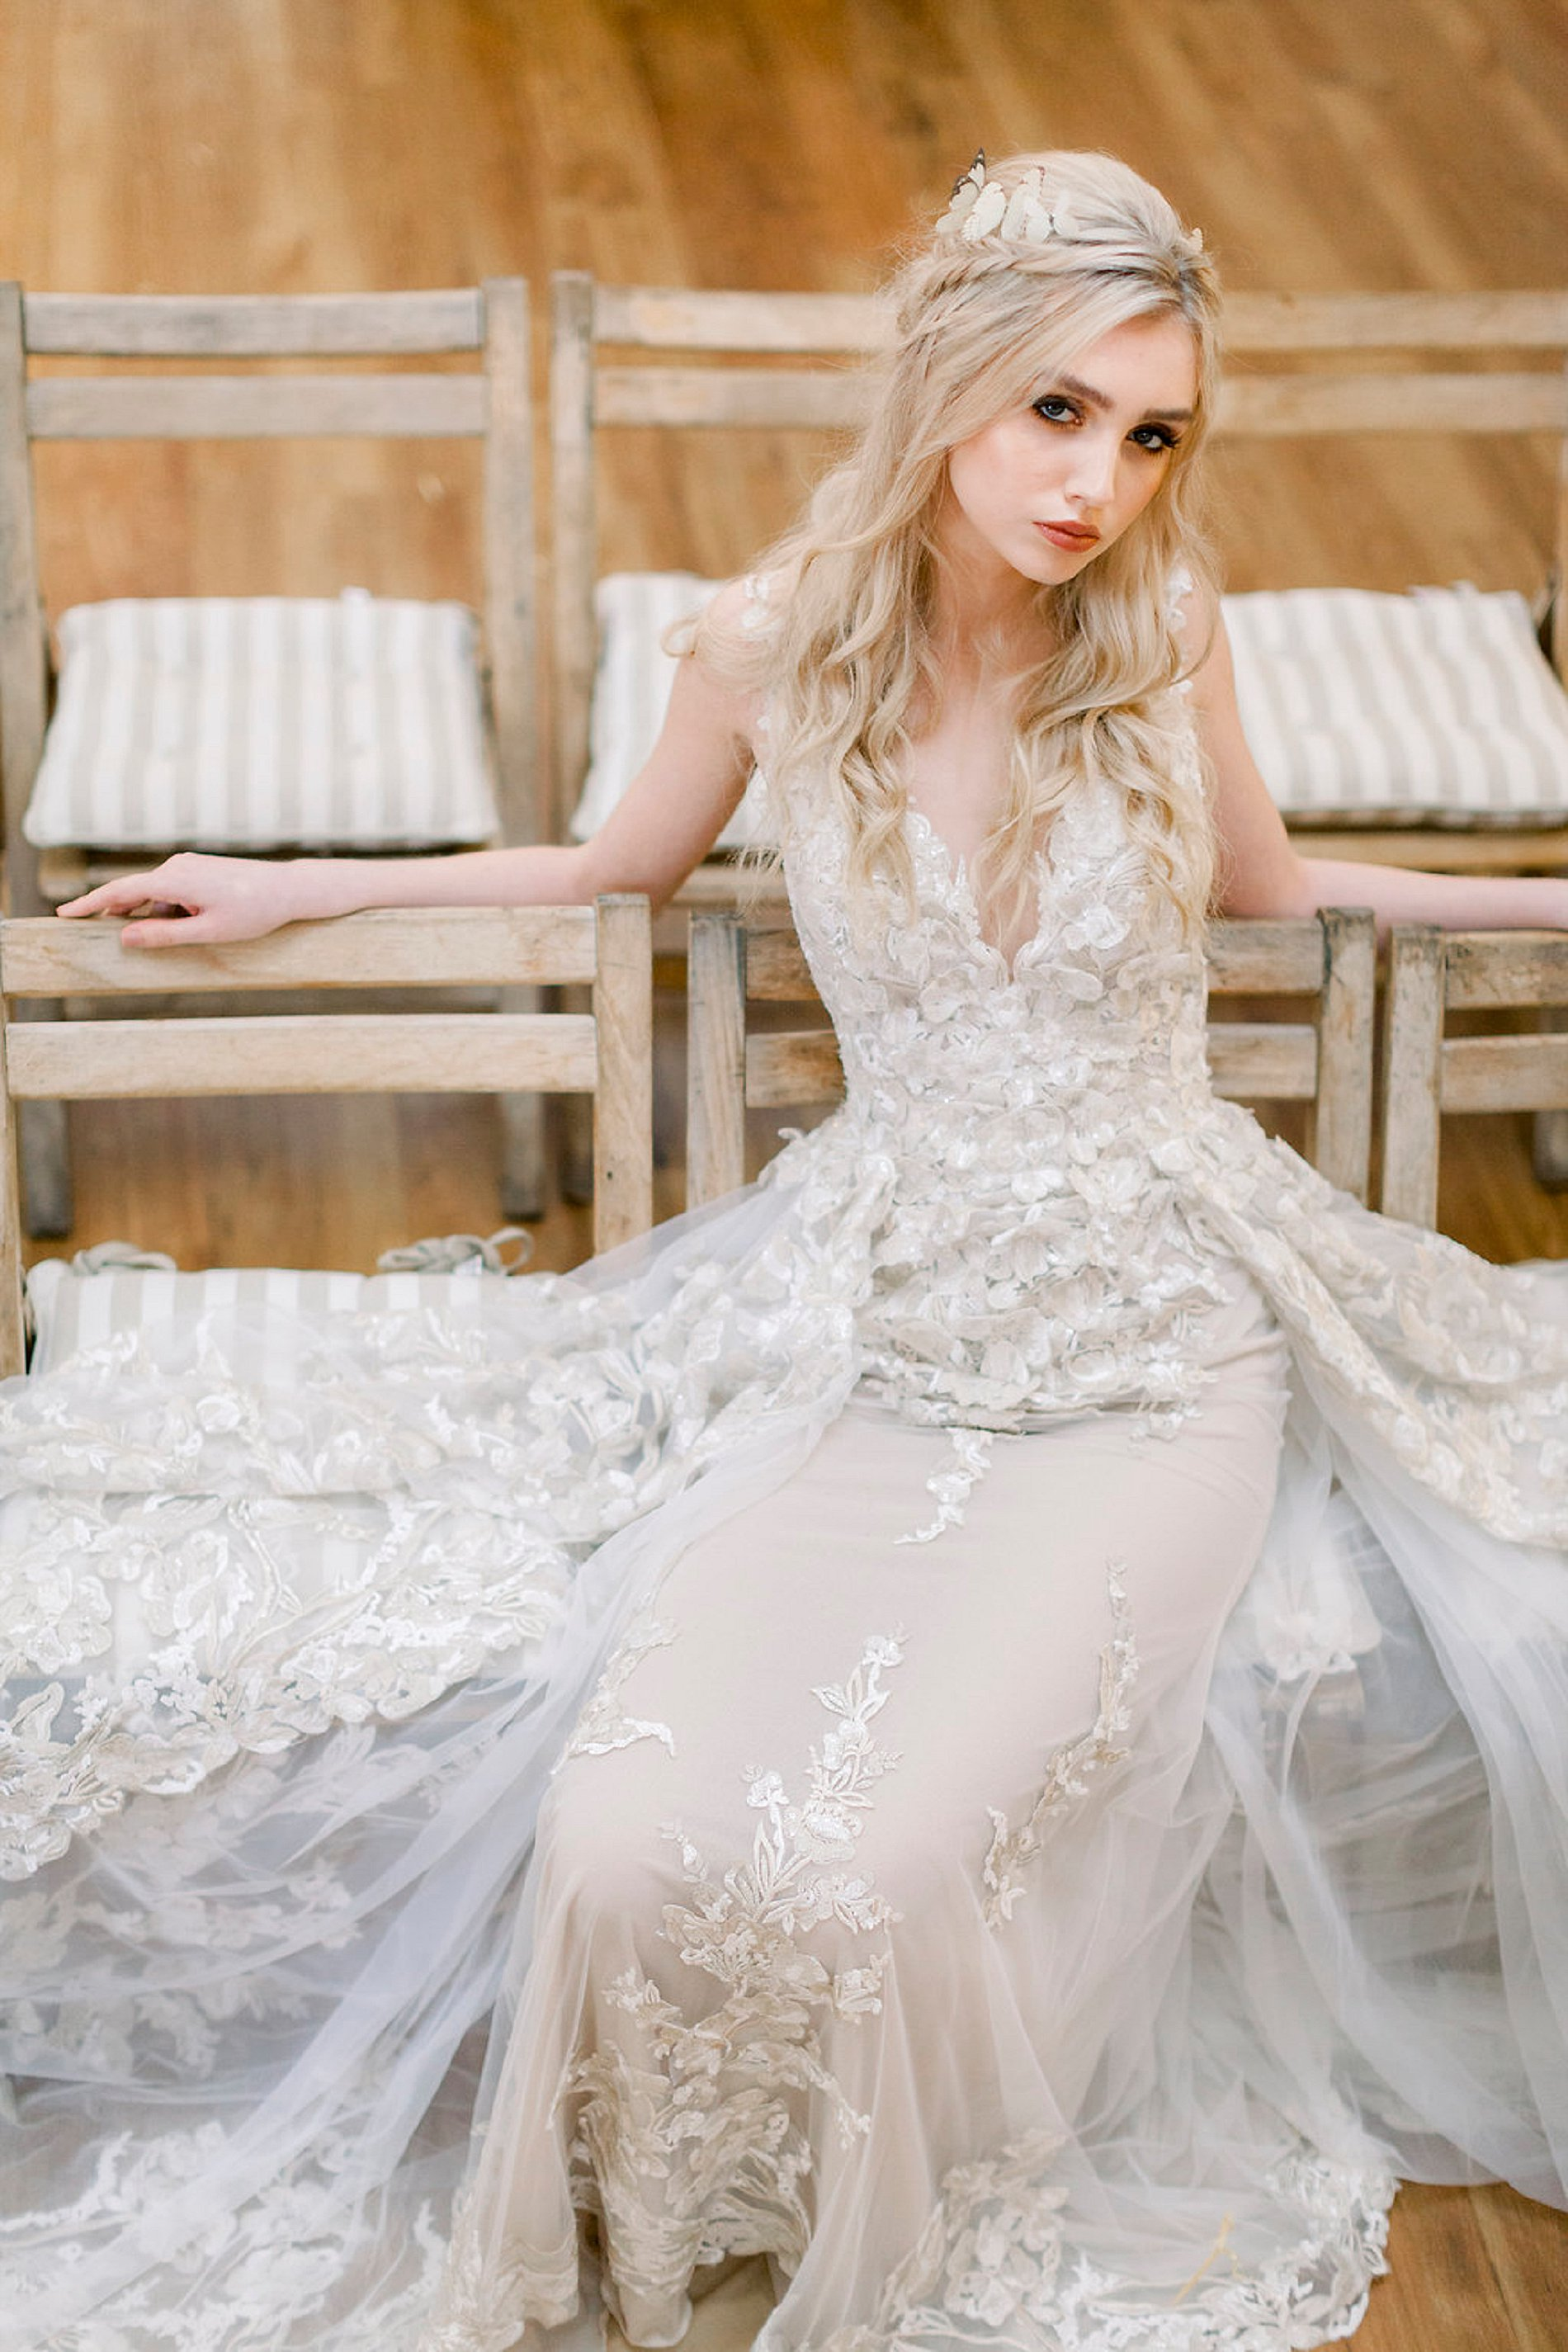 Super Natural Creative Bridal Editorial (c) Jo Bradbury (6)